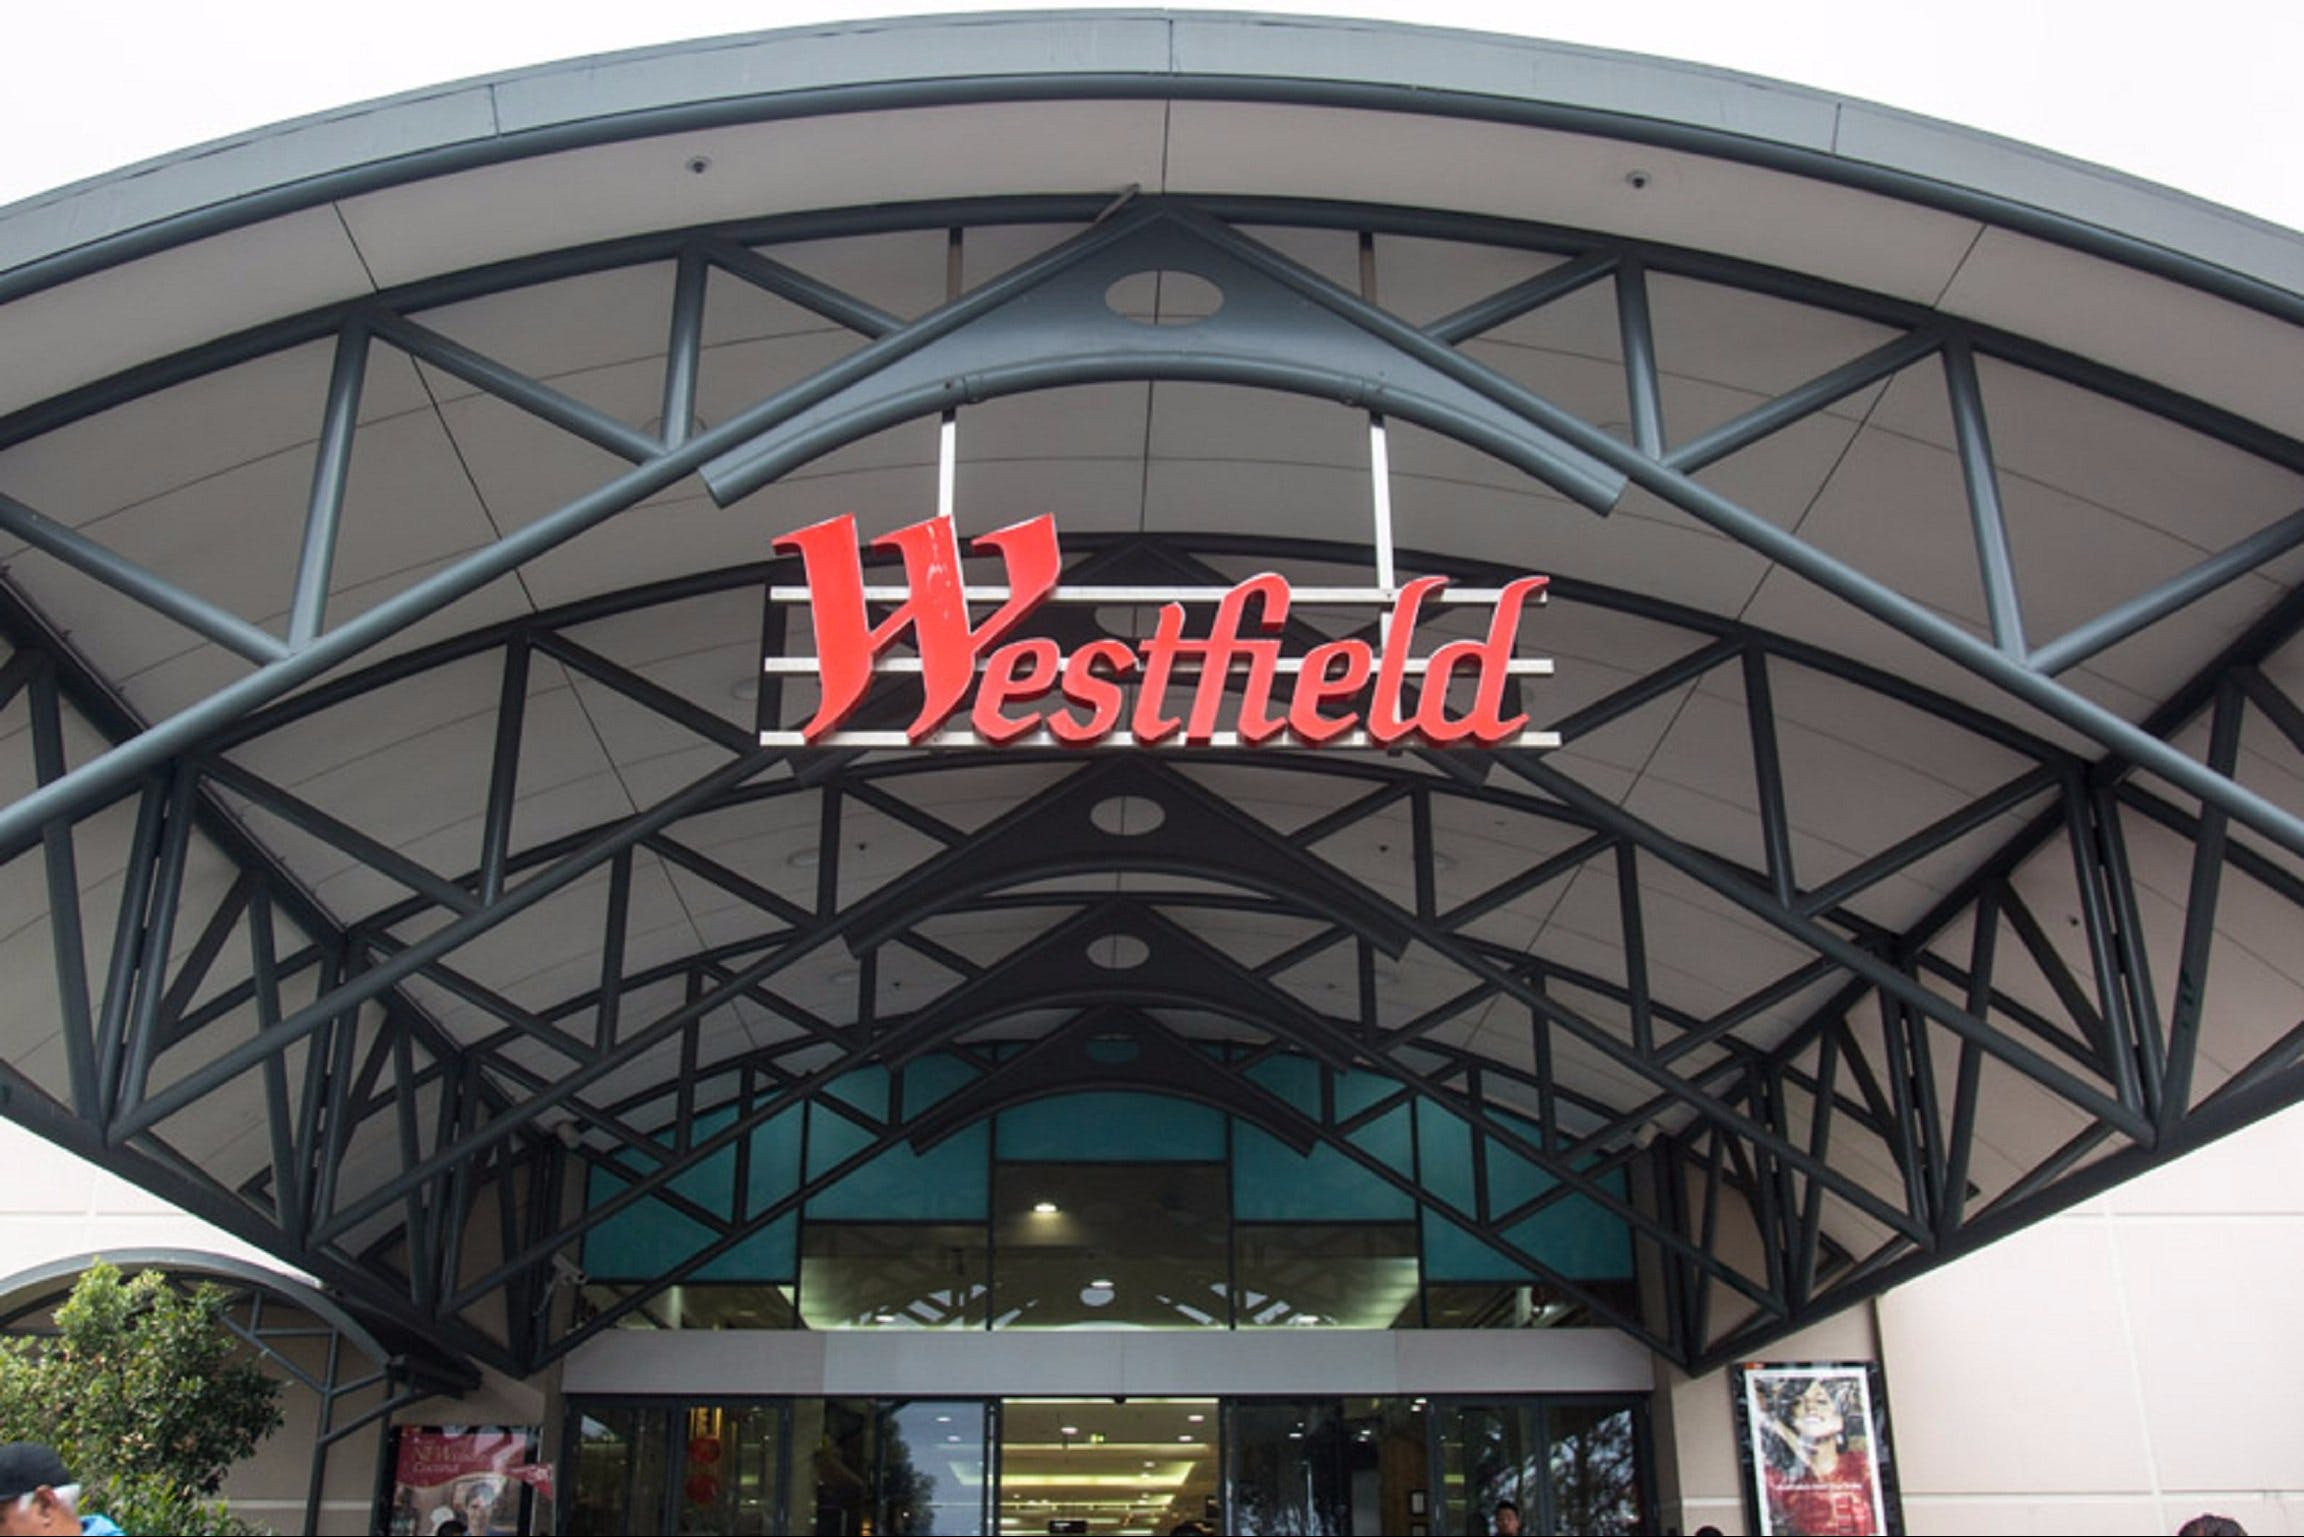 Westfield Shopping Centre Mount Druitt - Tourism Adelaide